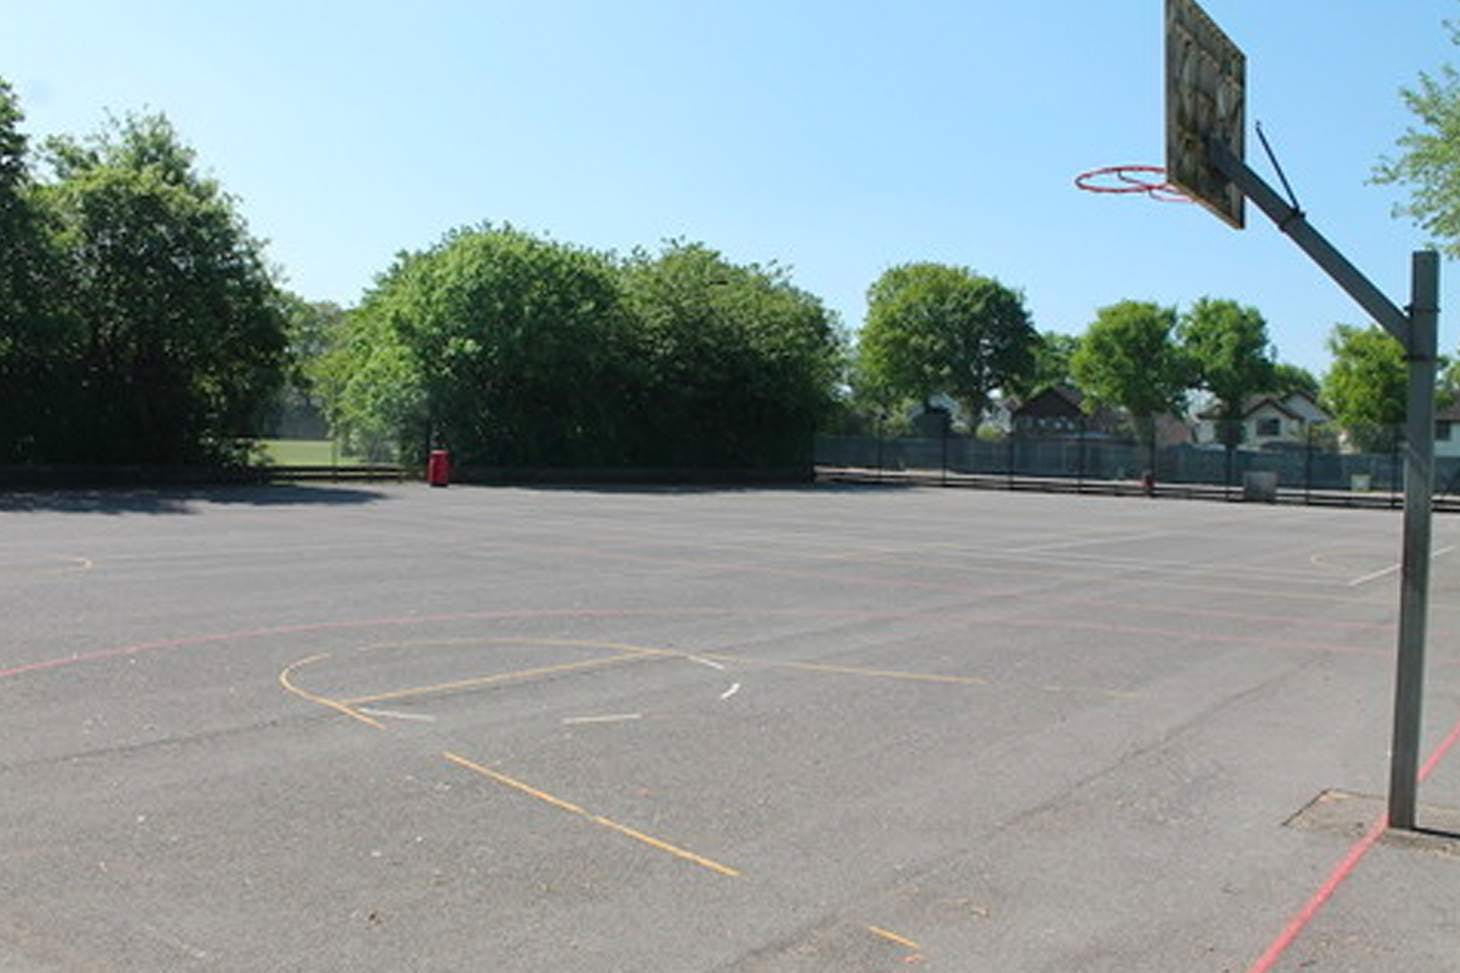 Mayflower High School 5 a side | Hard (macadam) football pitch